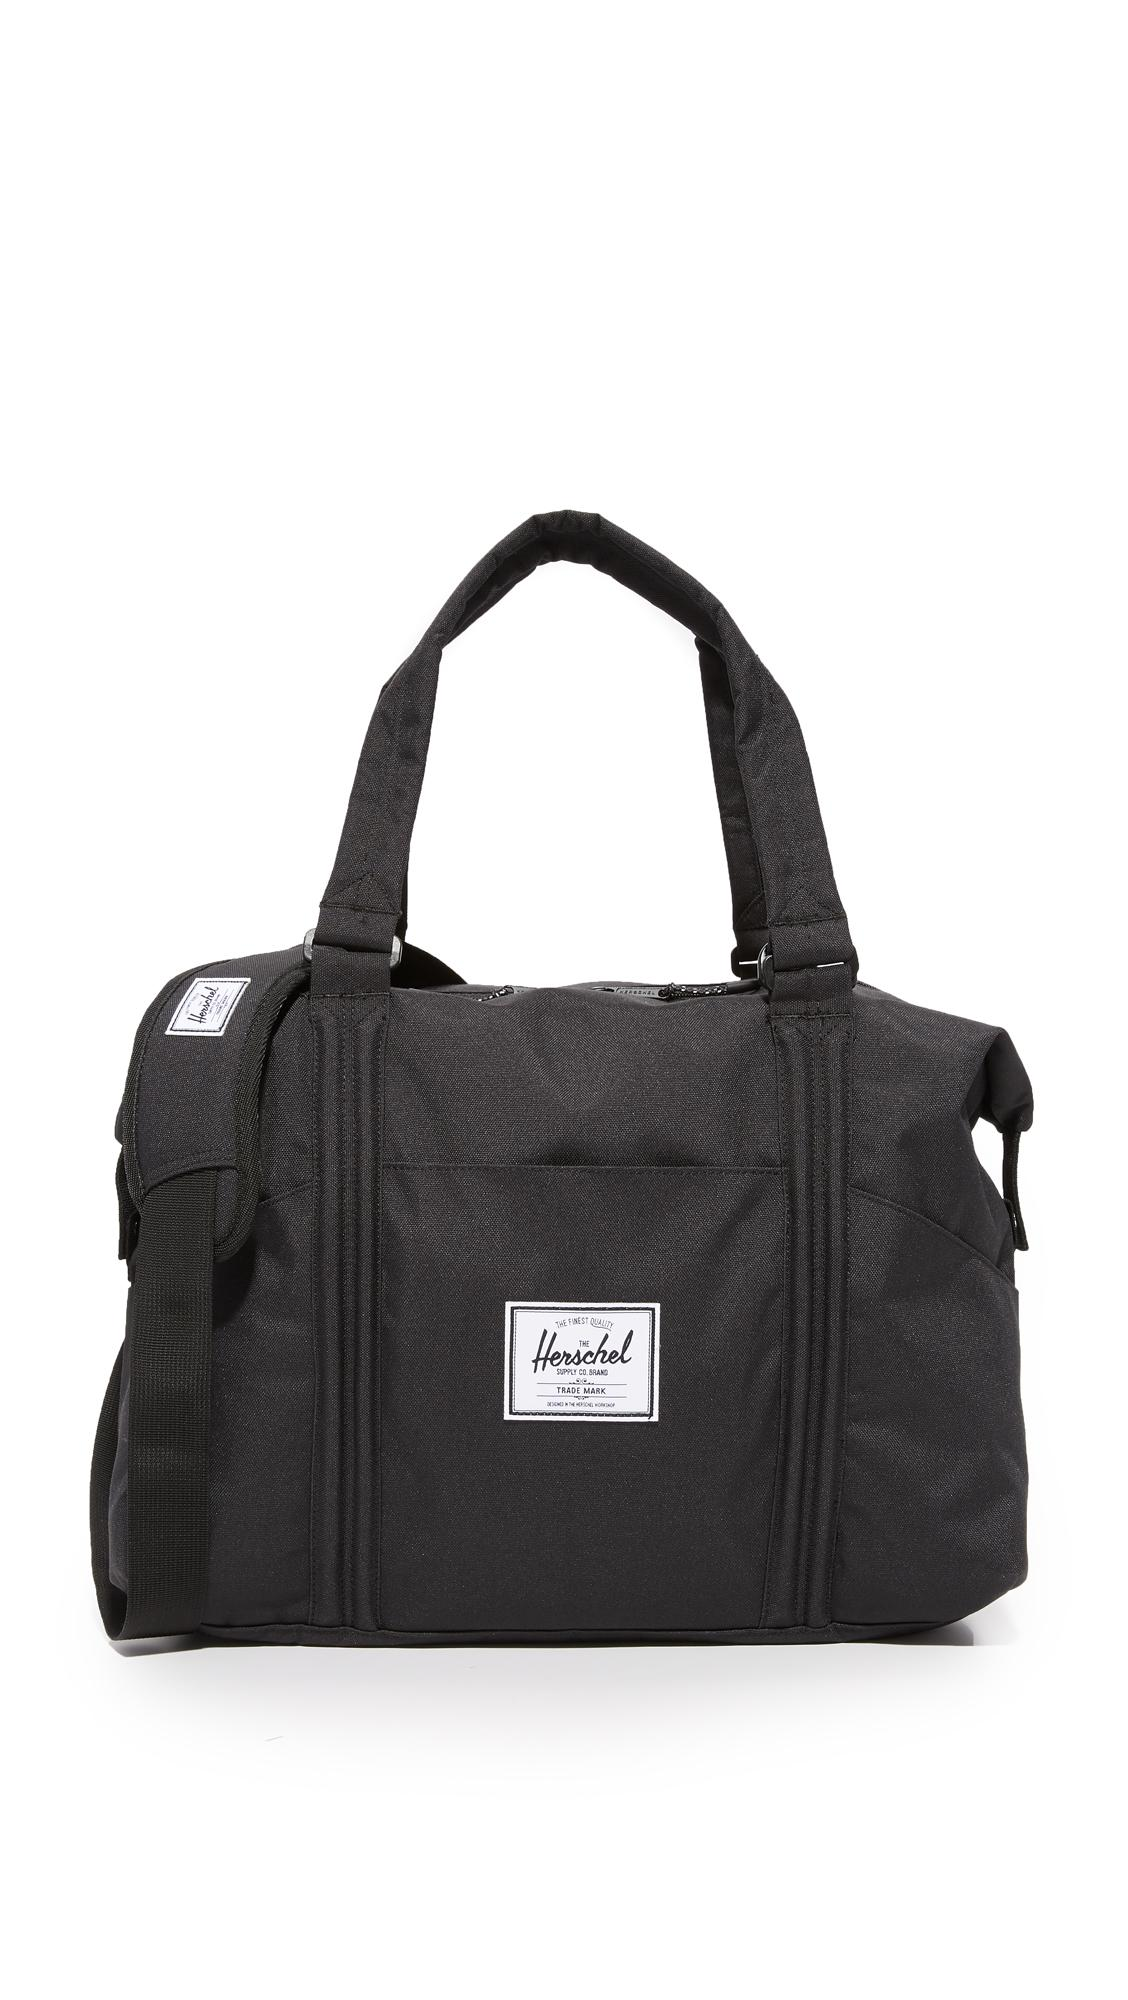 f29d7ea682f Lyst - Herschel Supply Co. Strand Sprout Diaper Bag in Black